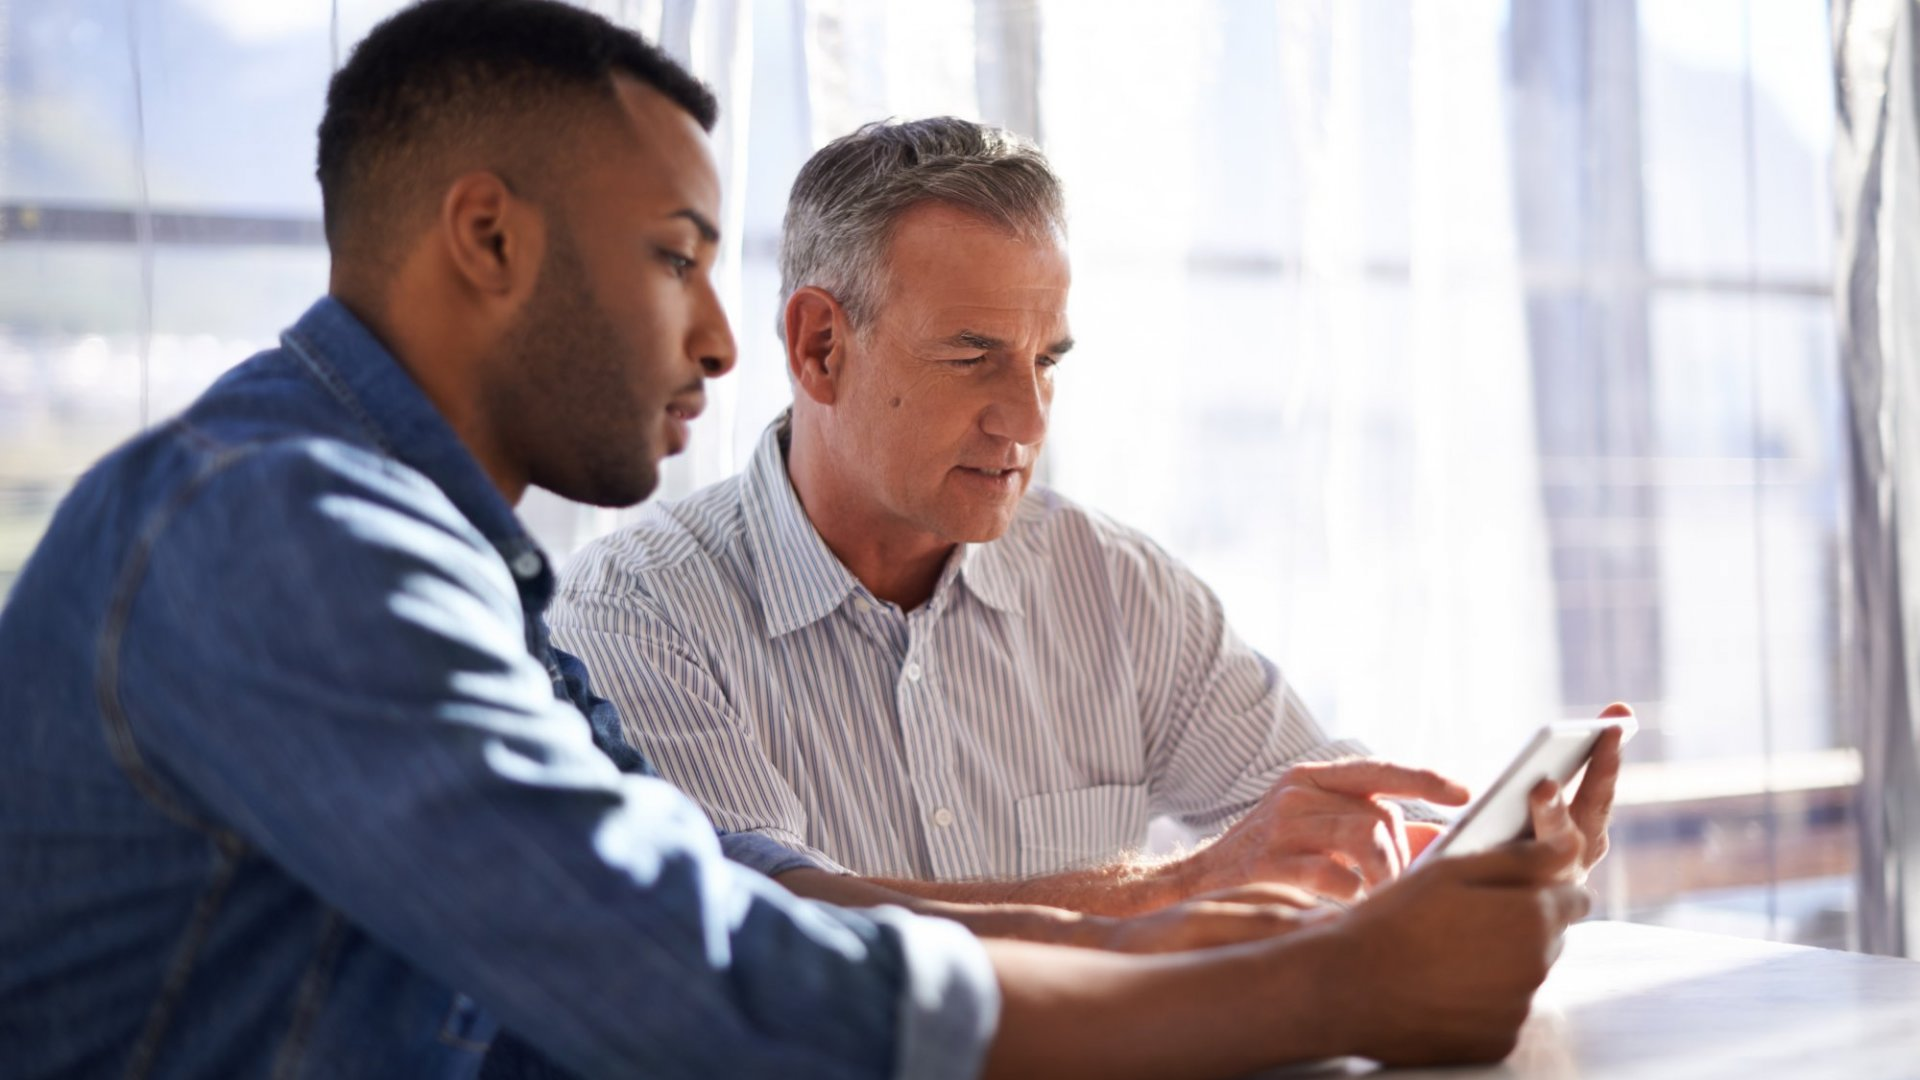 Purchasing a Business: Why a Smooth Transition of Ownership Is Critical